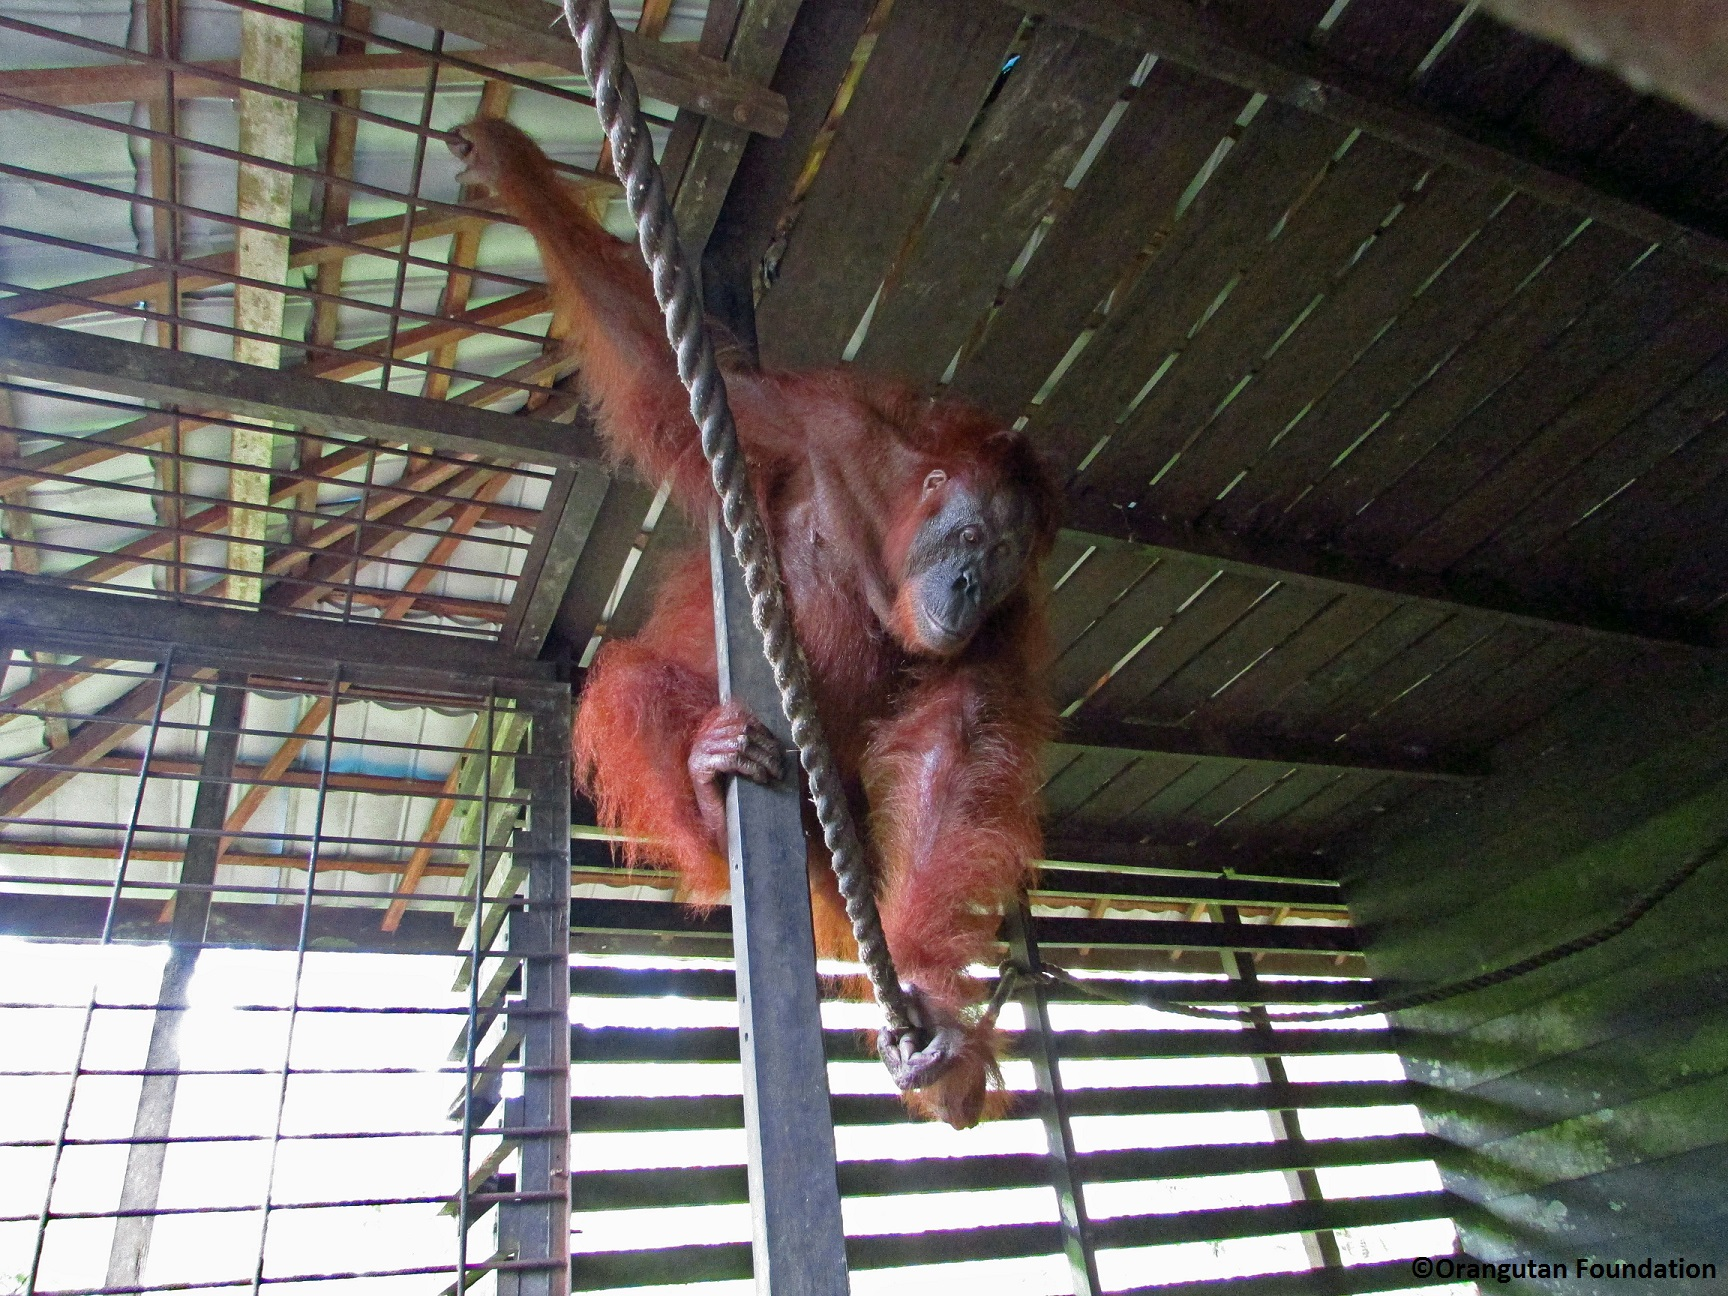 Blind Bornean orangutan, Aan, in her enclosure, in the Lamandau Wildlife Reserve, Borneo